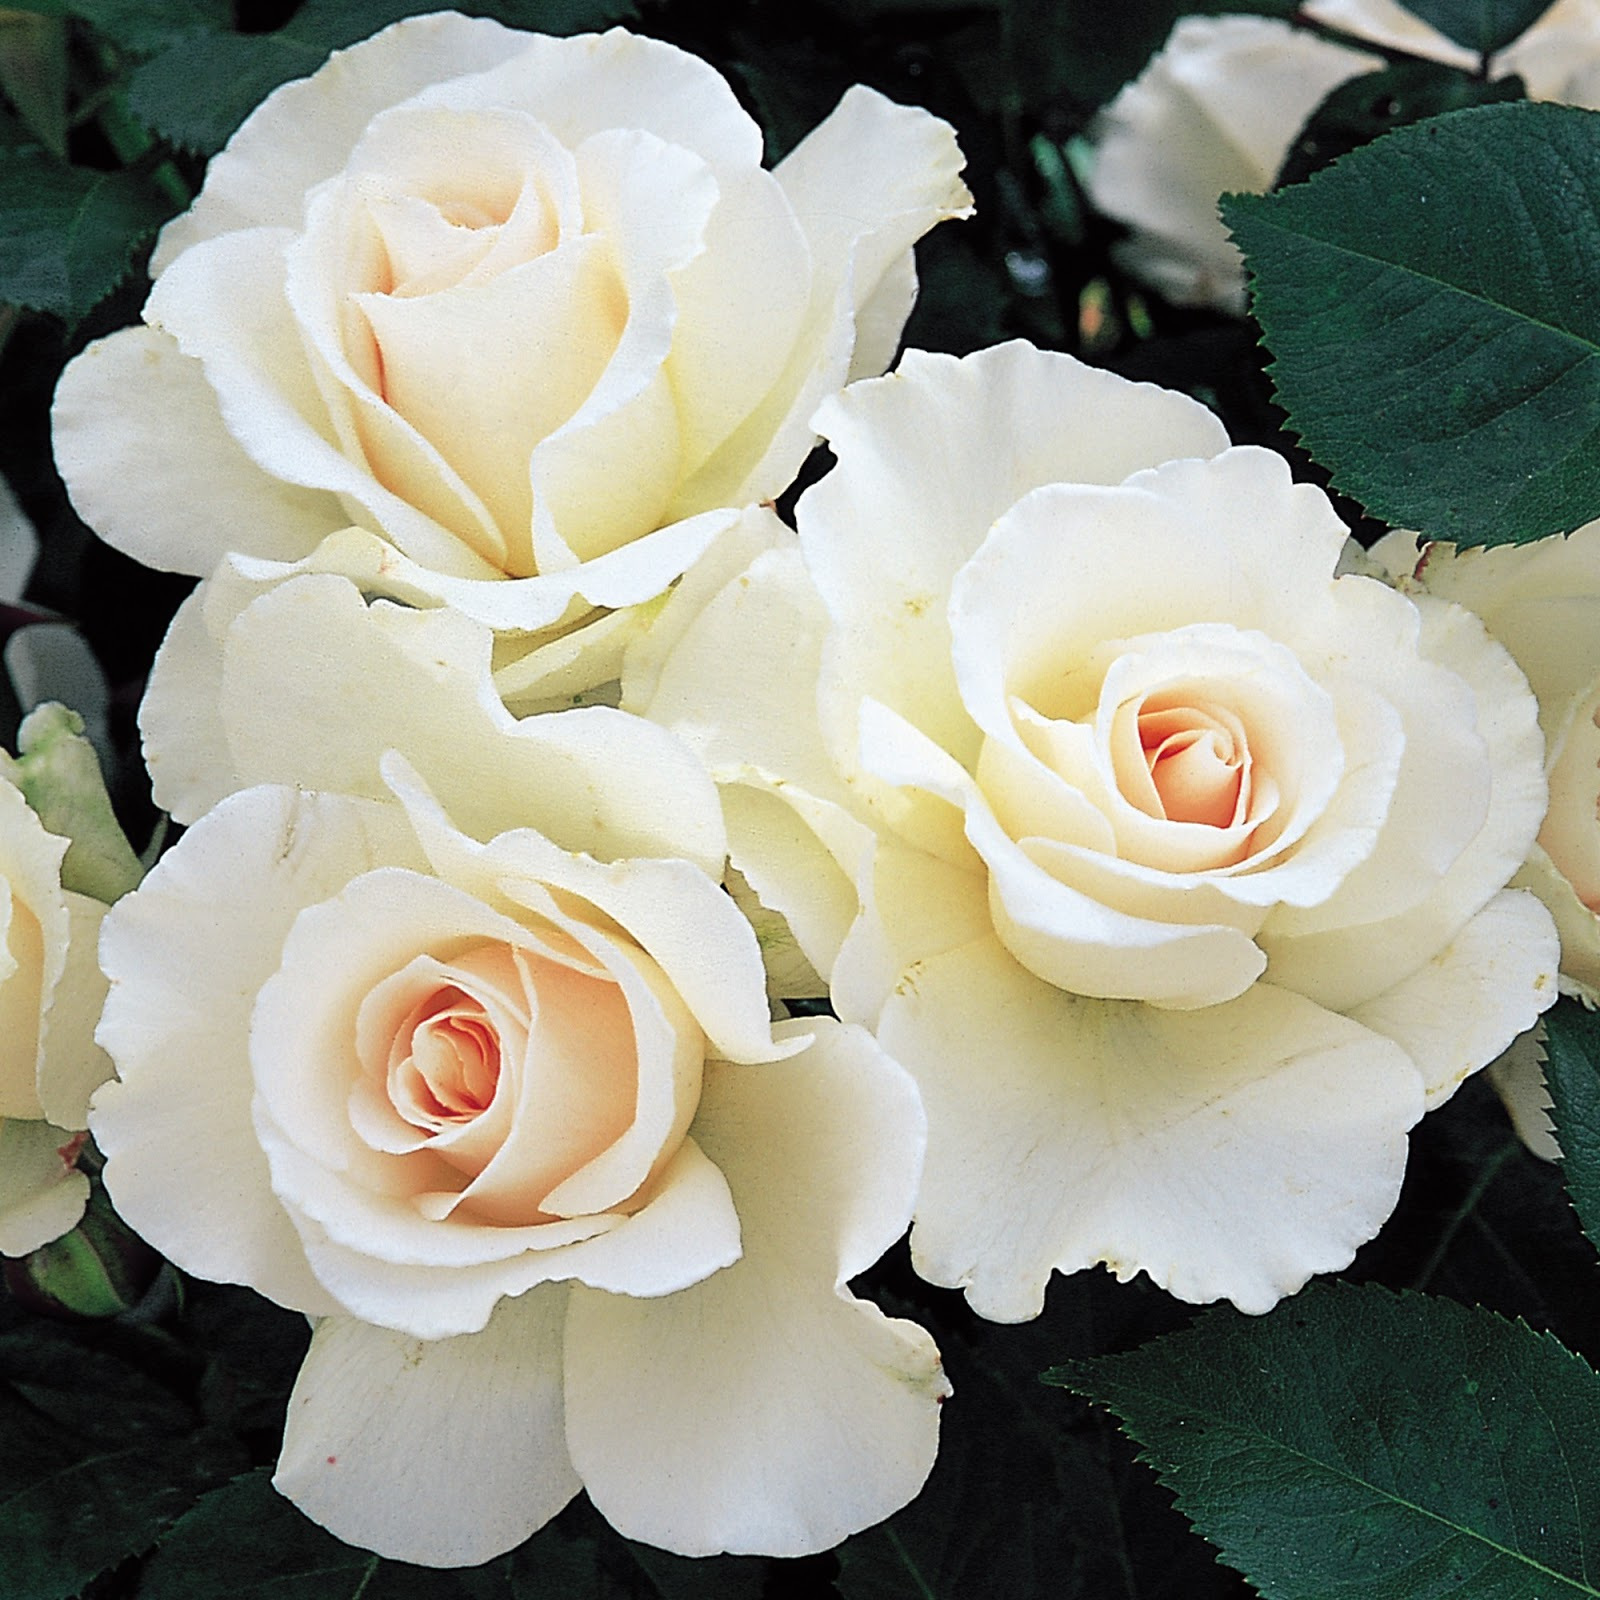 Most beautiful hd free wallpapers white roses hd wallpaper.